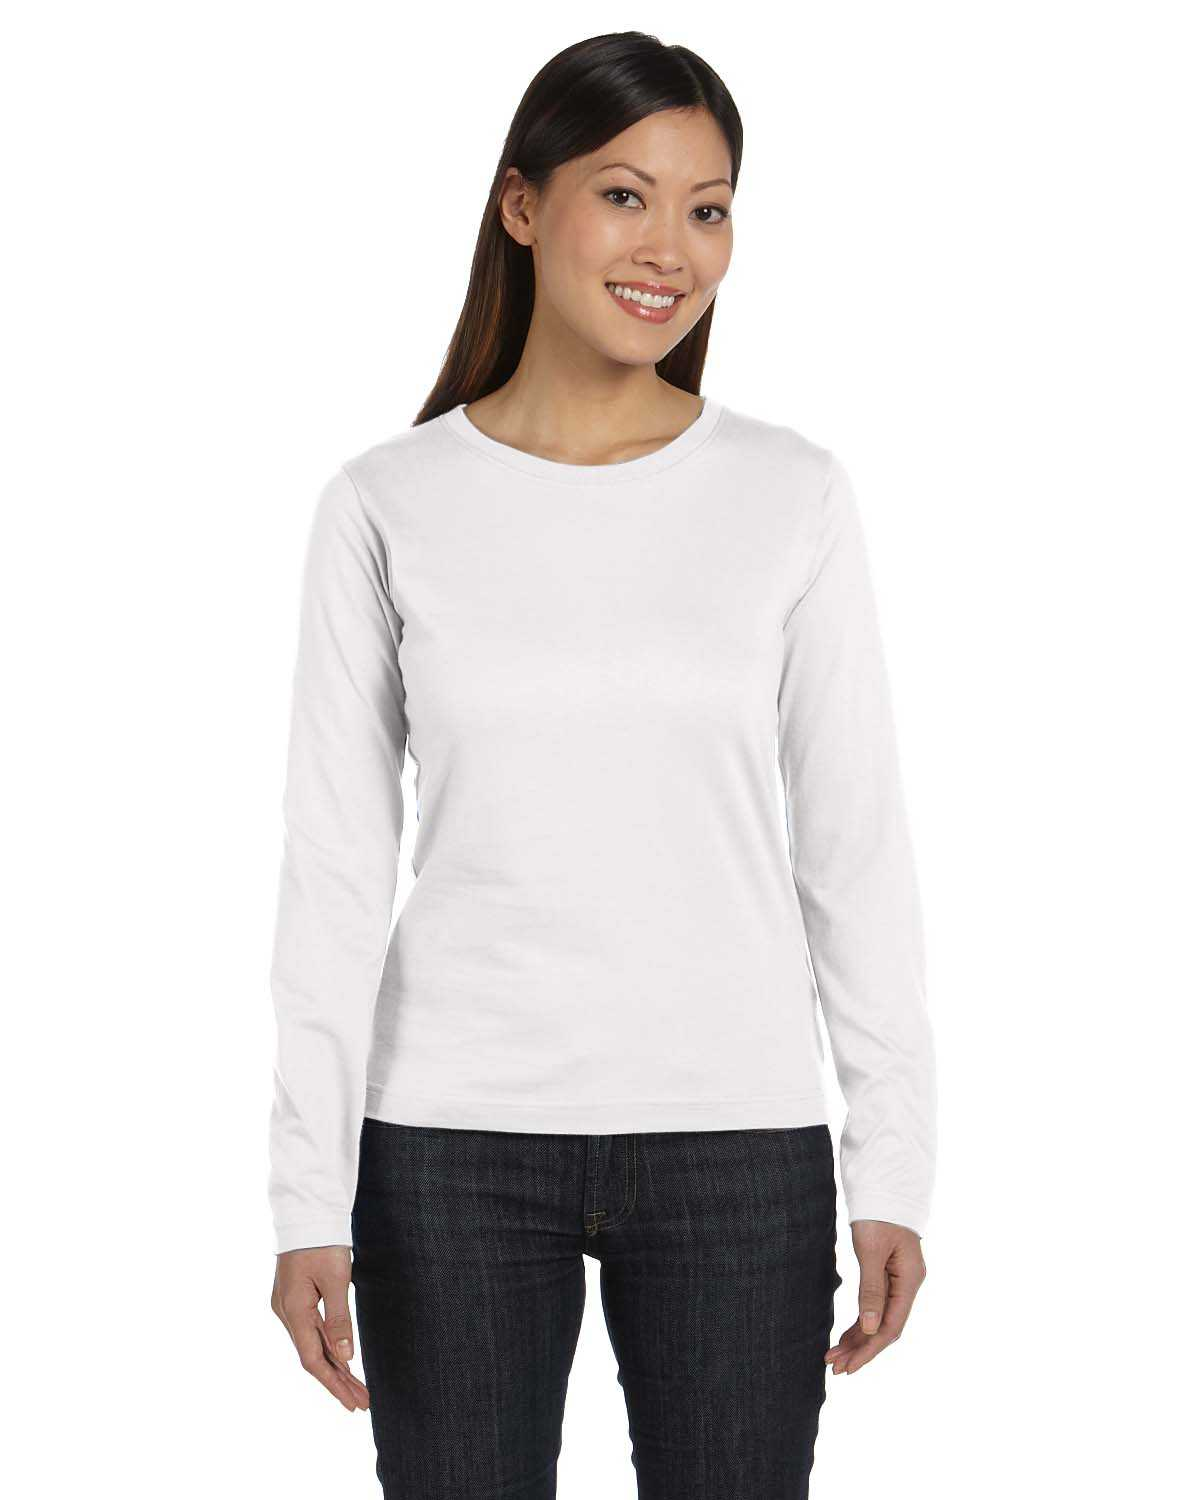 Lat 3588 ladies 39 long sleeve premium jersey t shirt for Misses long sleeve tee shirts